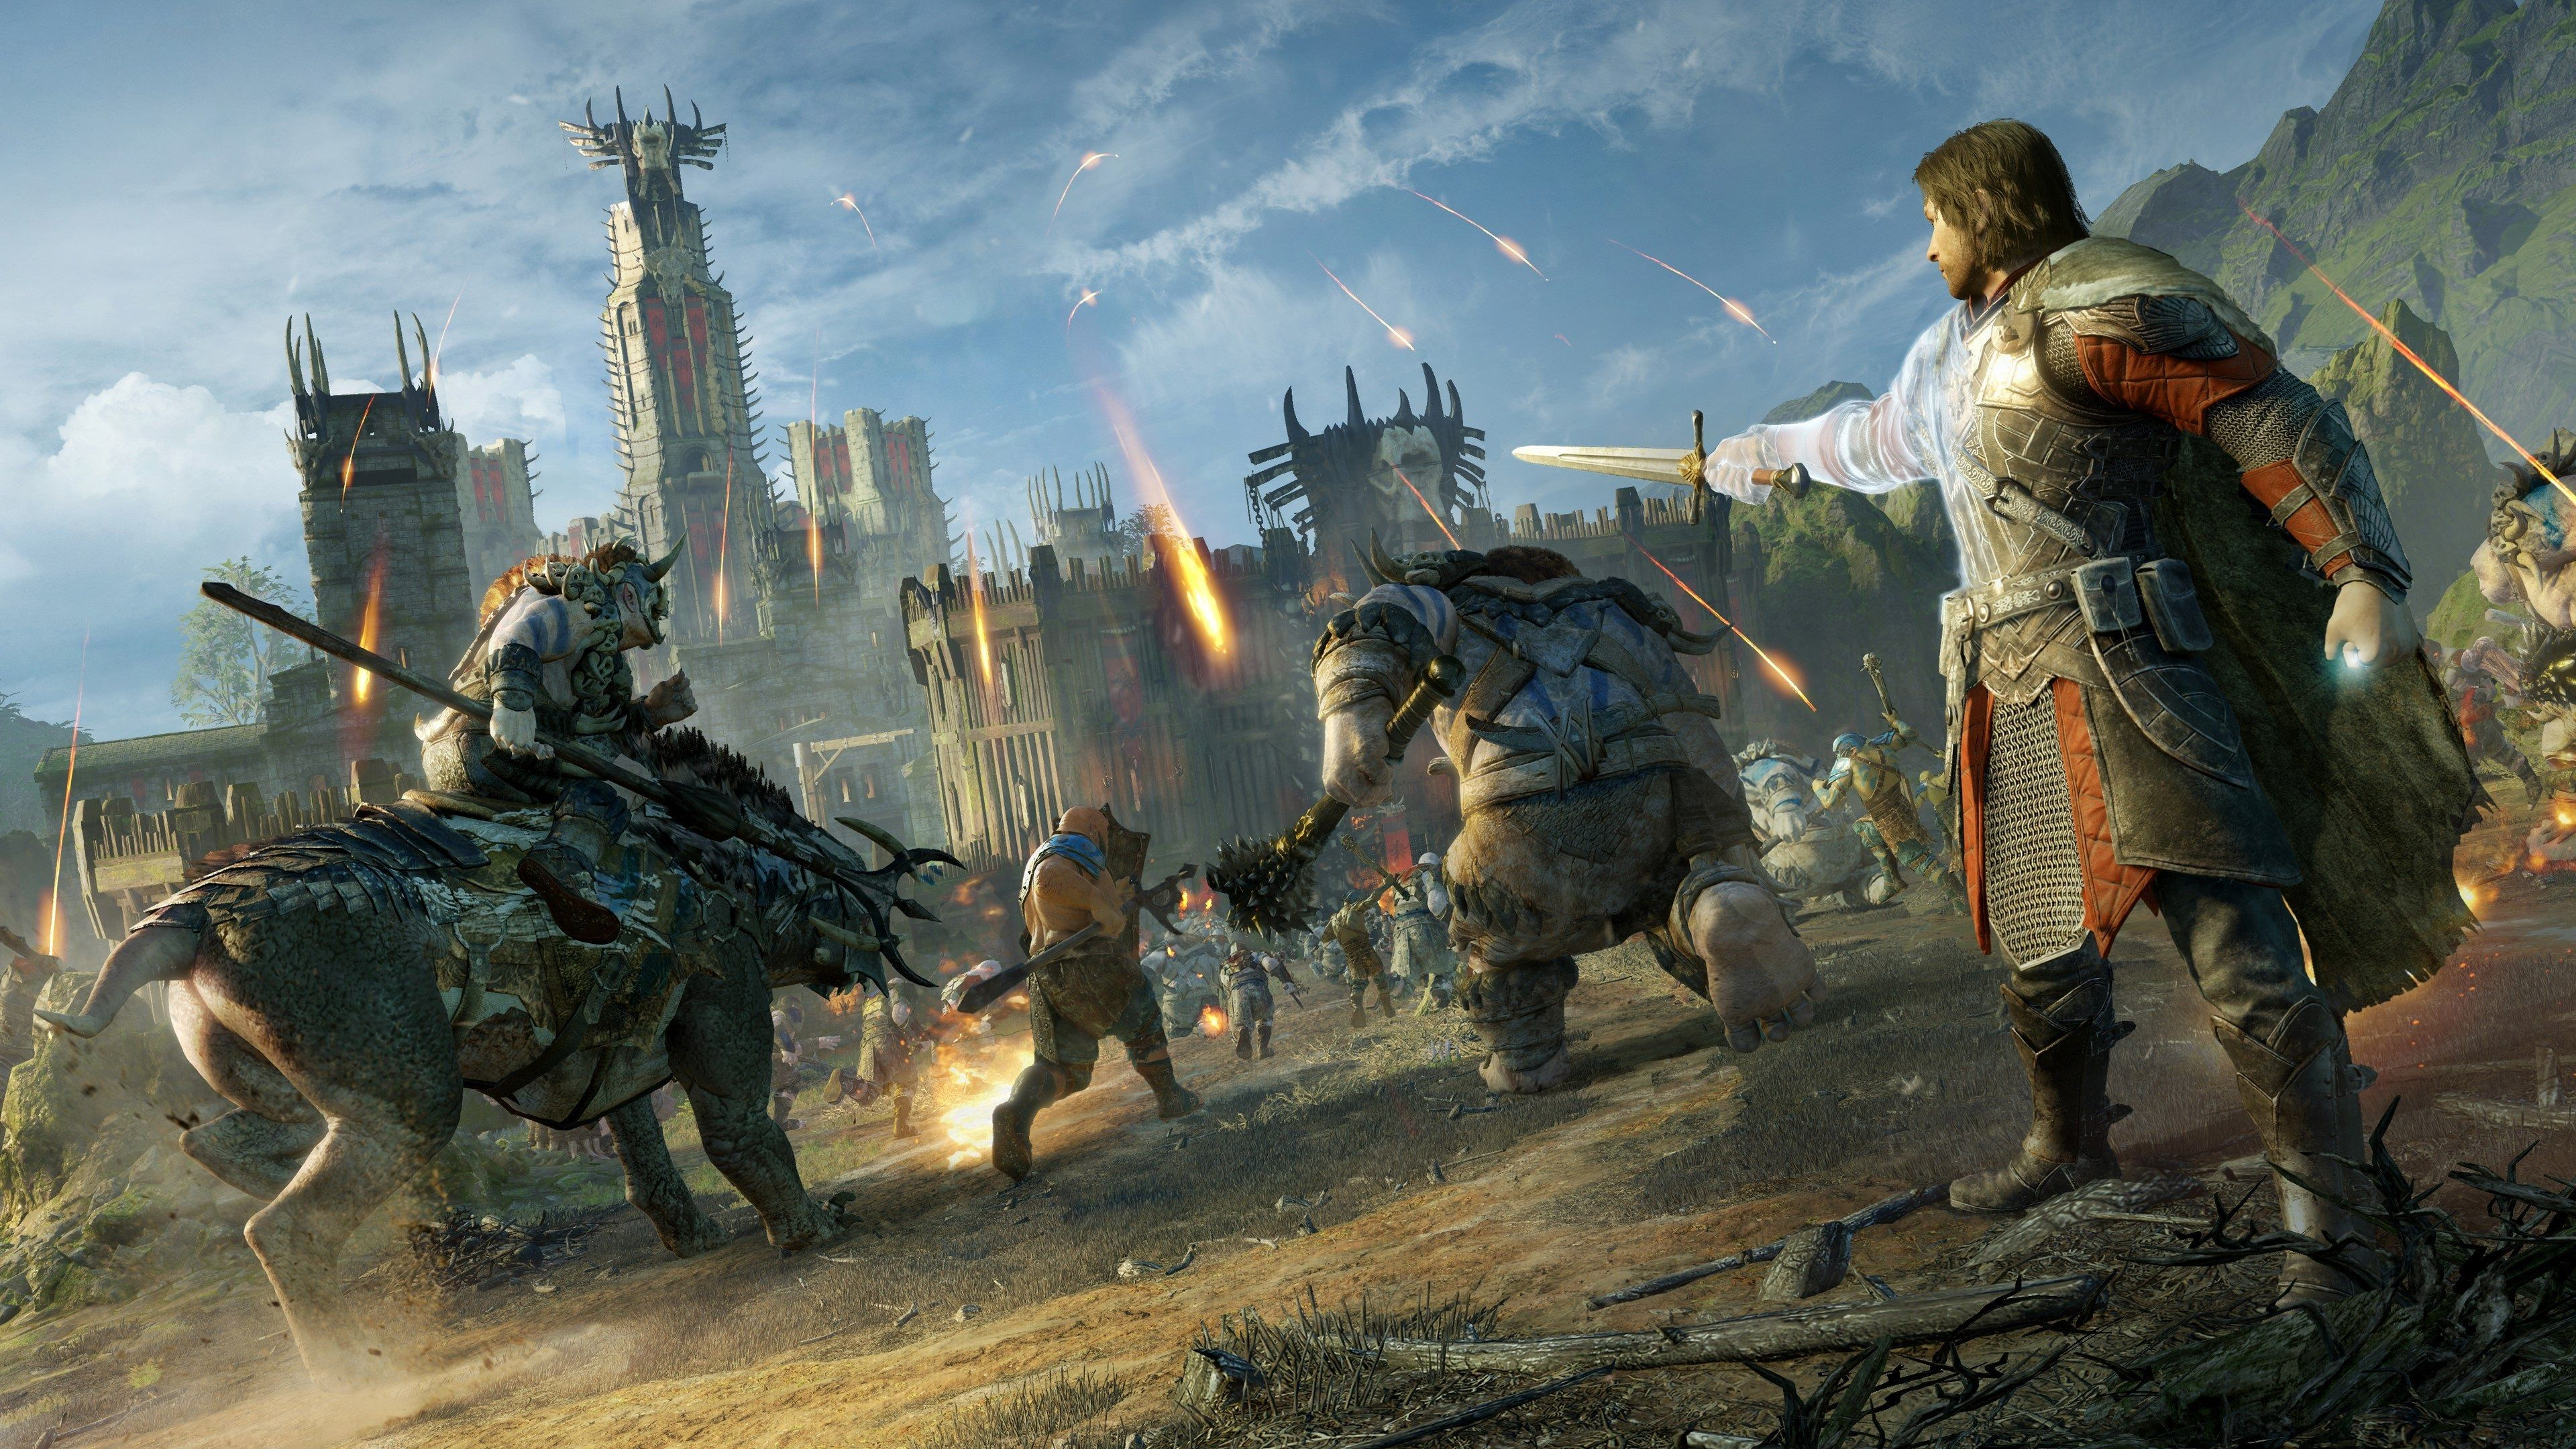 3840x2160 Middle Earth Shadow Of Mordor 4k Hd Wallpaper For